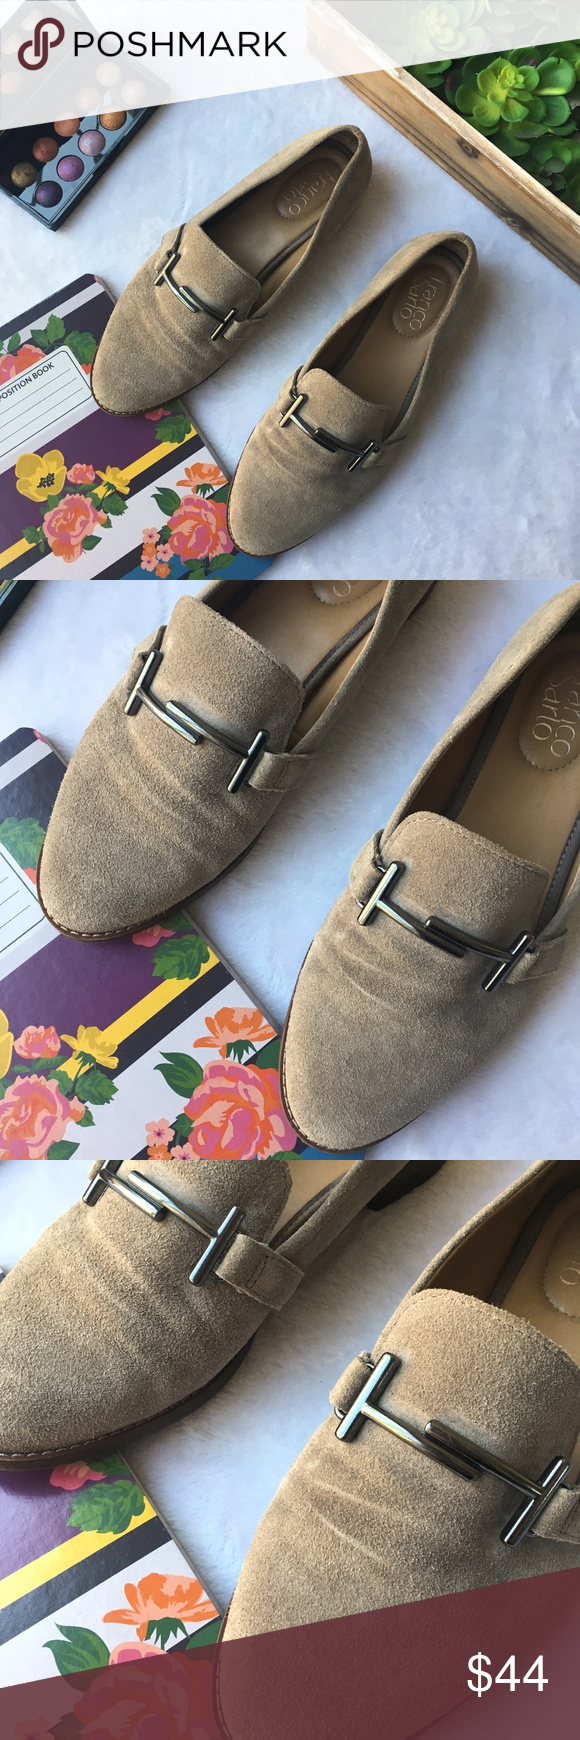 0dc6ad3c1f3 Franco Sarto Harlow tan suede horse bit loafer Franco Sarto Harlow tan  suede horse bit loafer